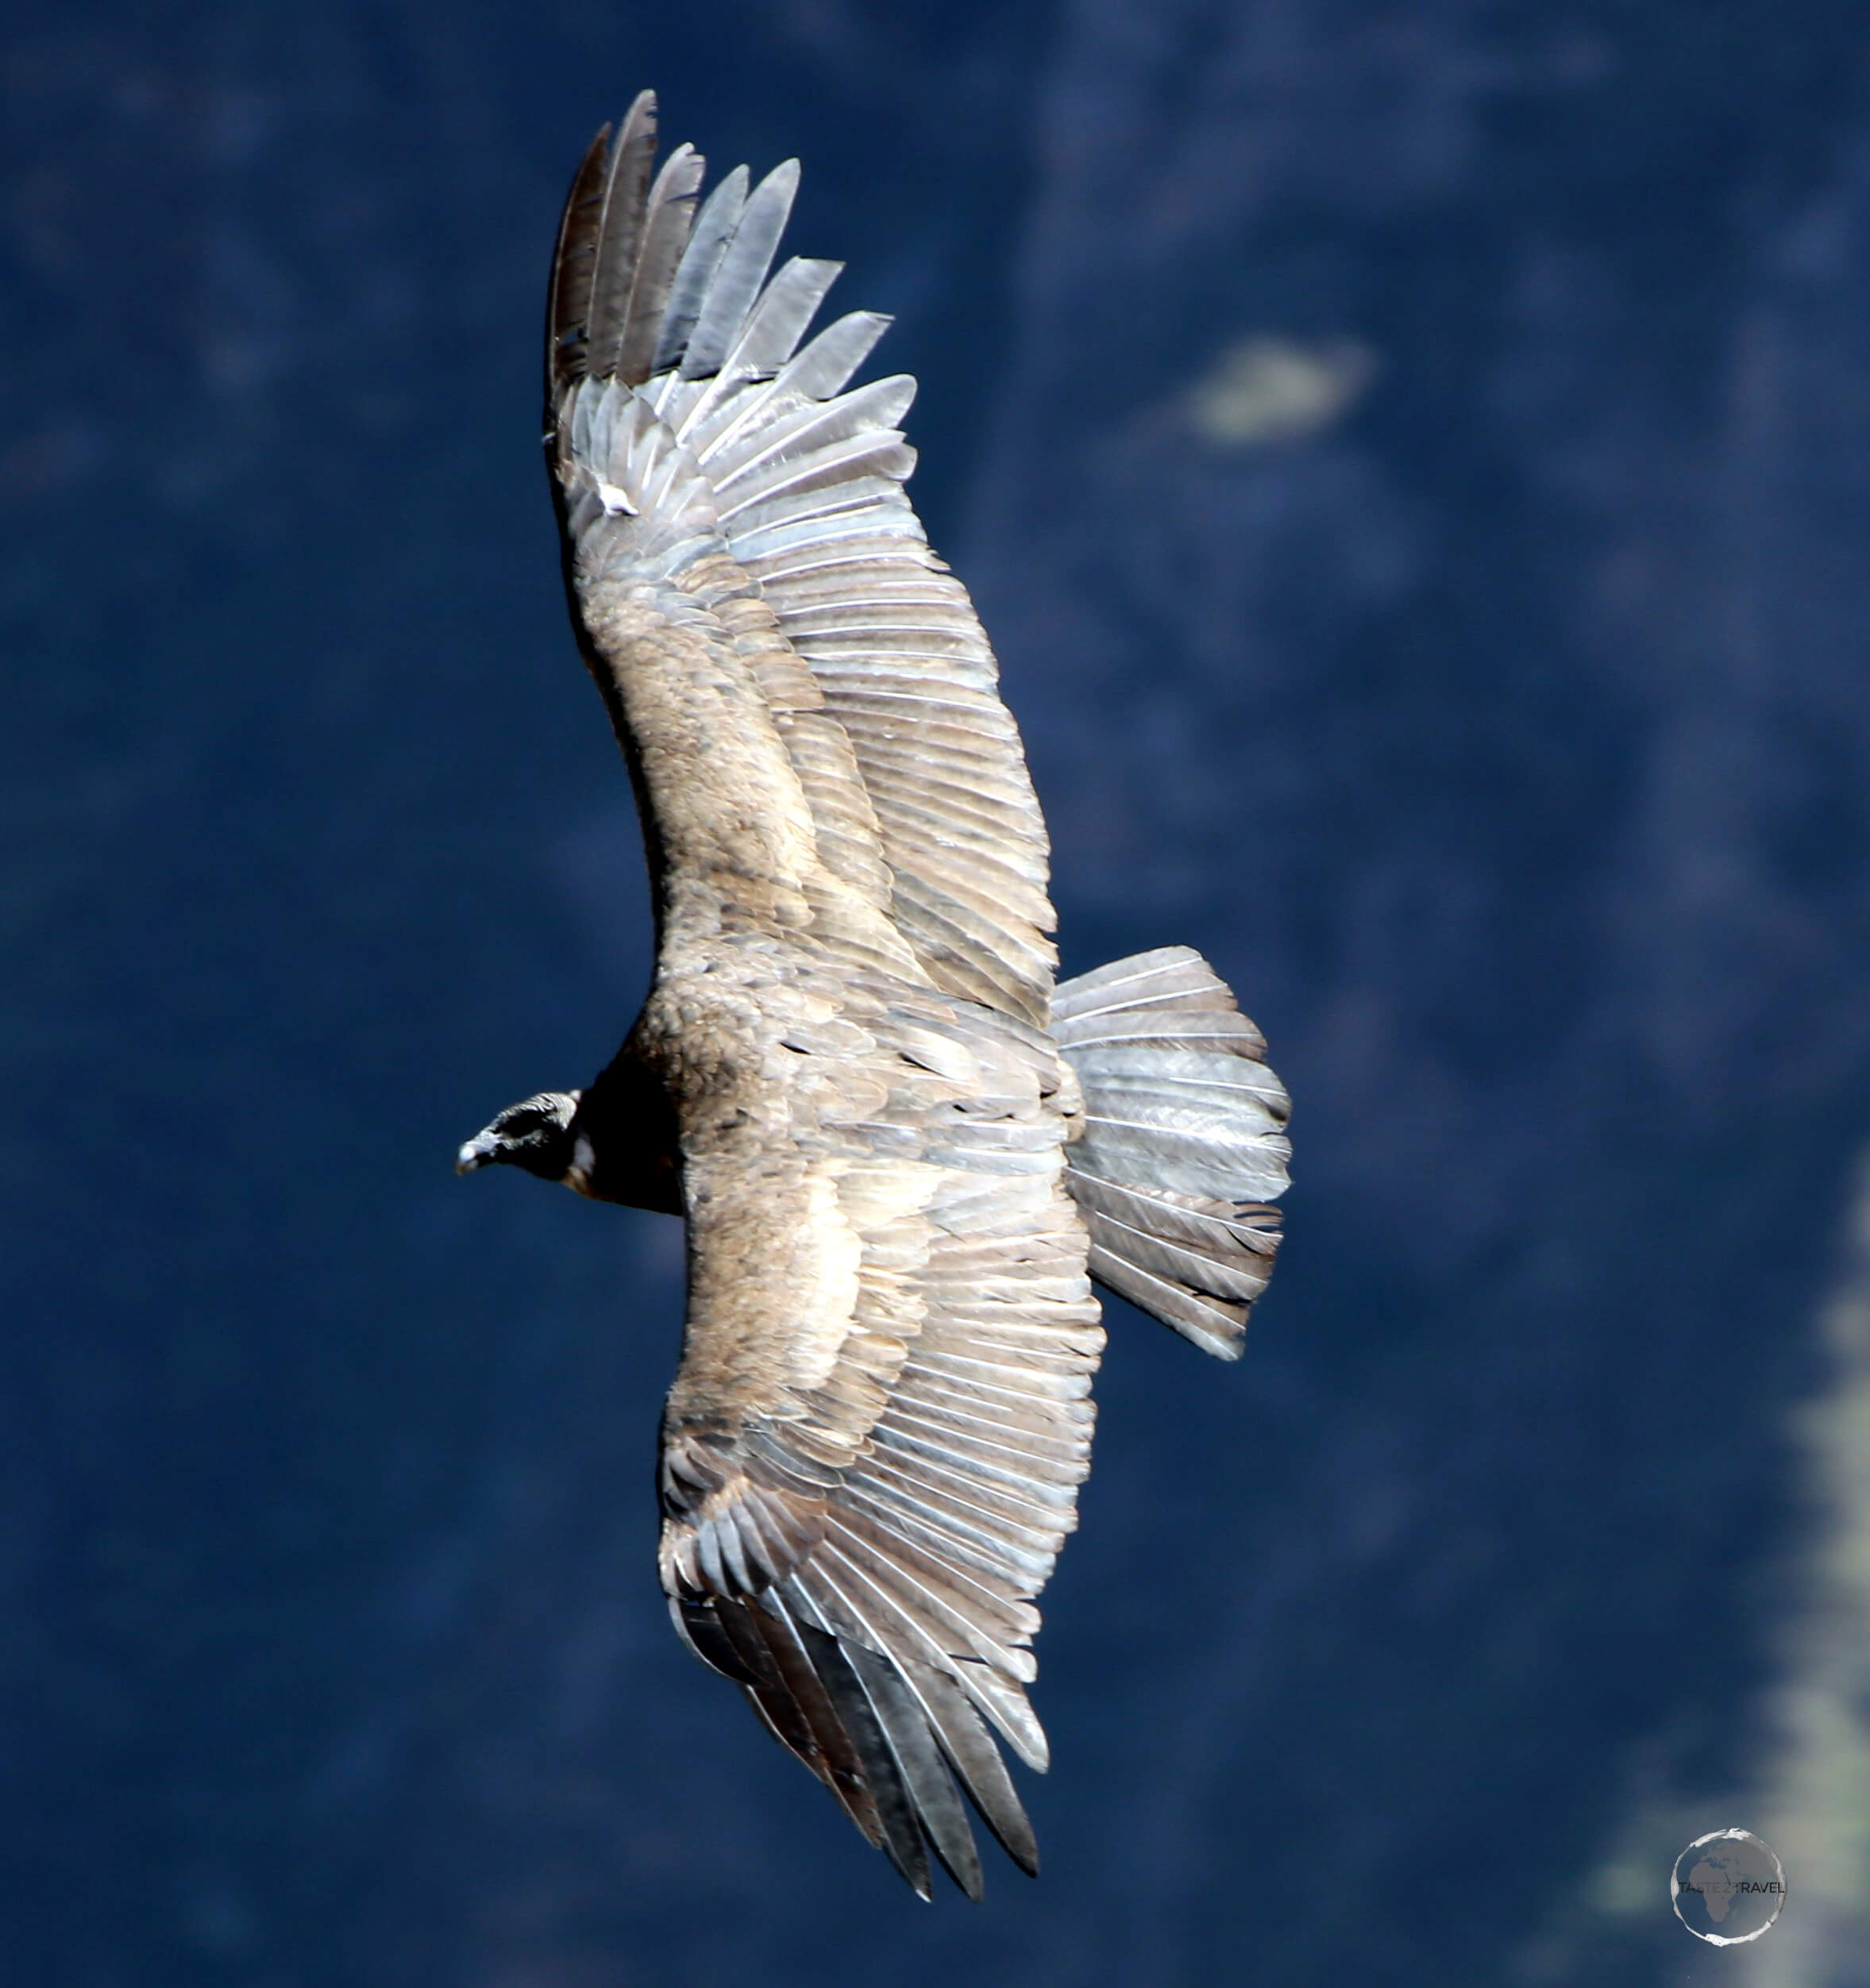 The Andean condor, seen here in the Colca canyon in southern Peru, is the largest flying bird in the world by combined measurement of weight and wingspan (3.3 m / 11 ft).